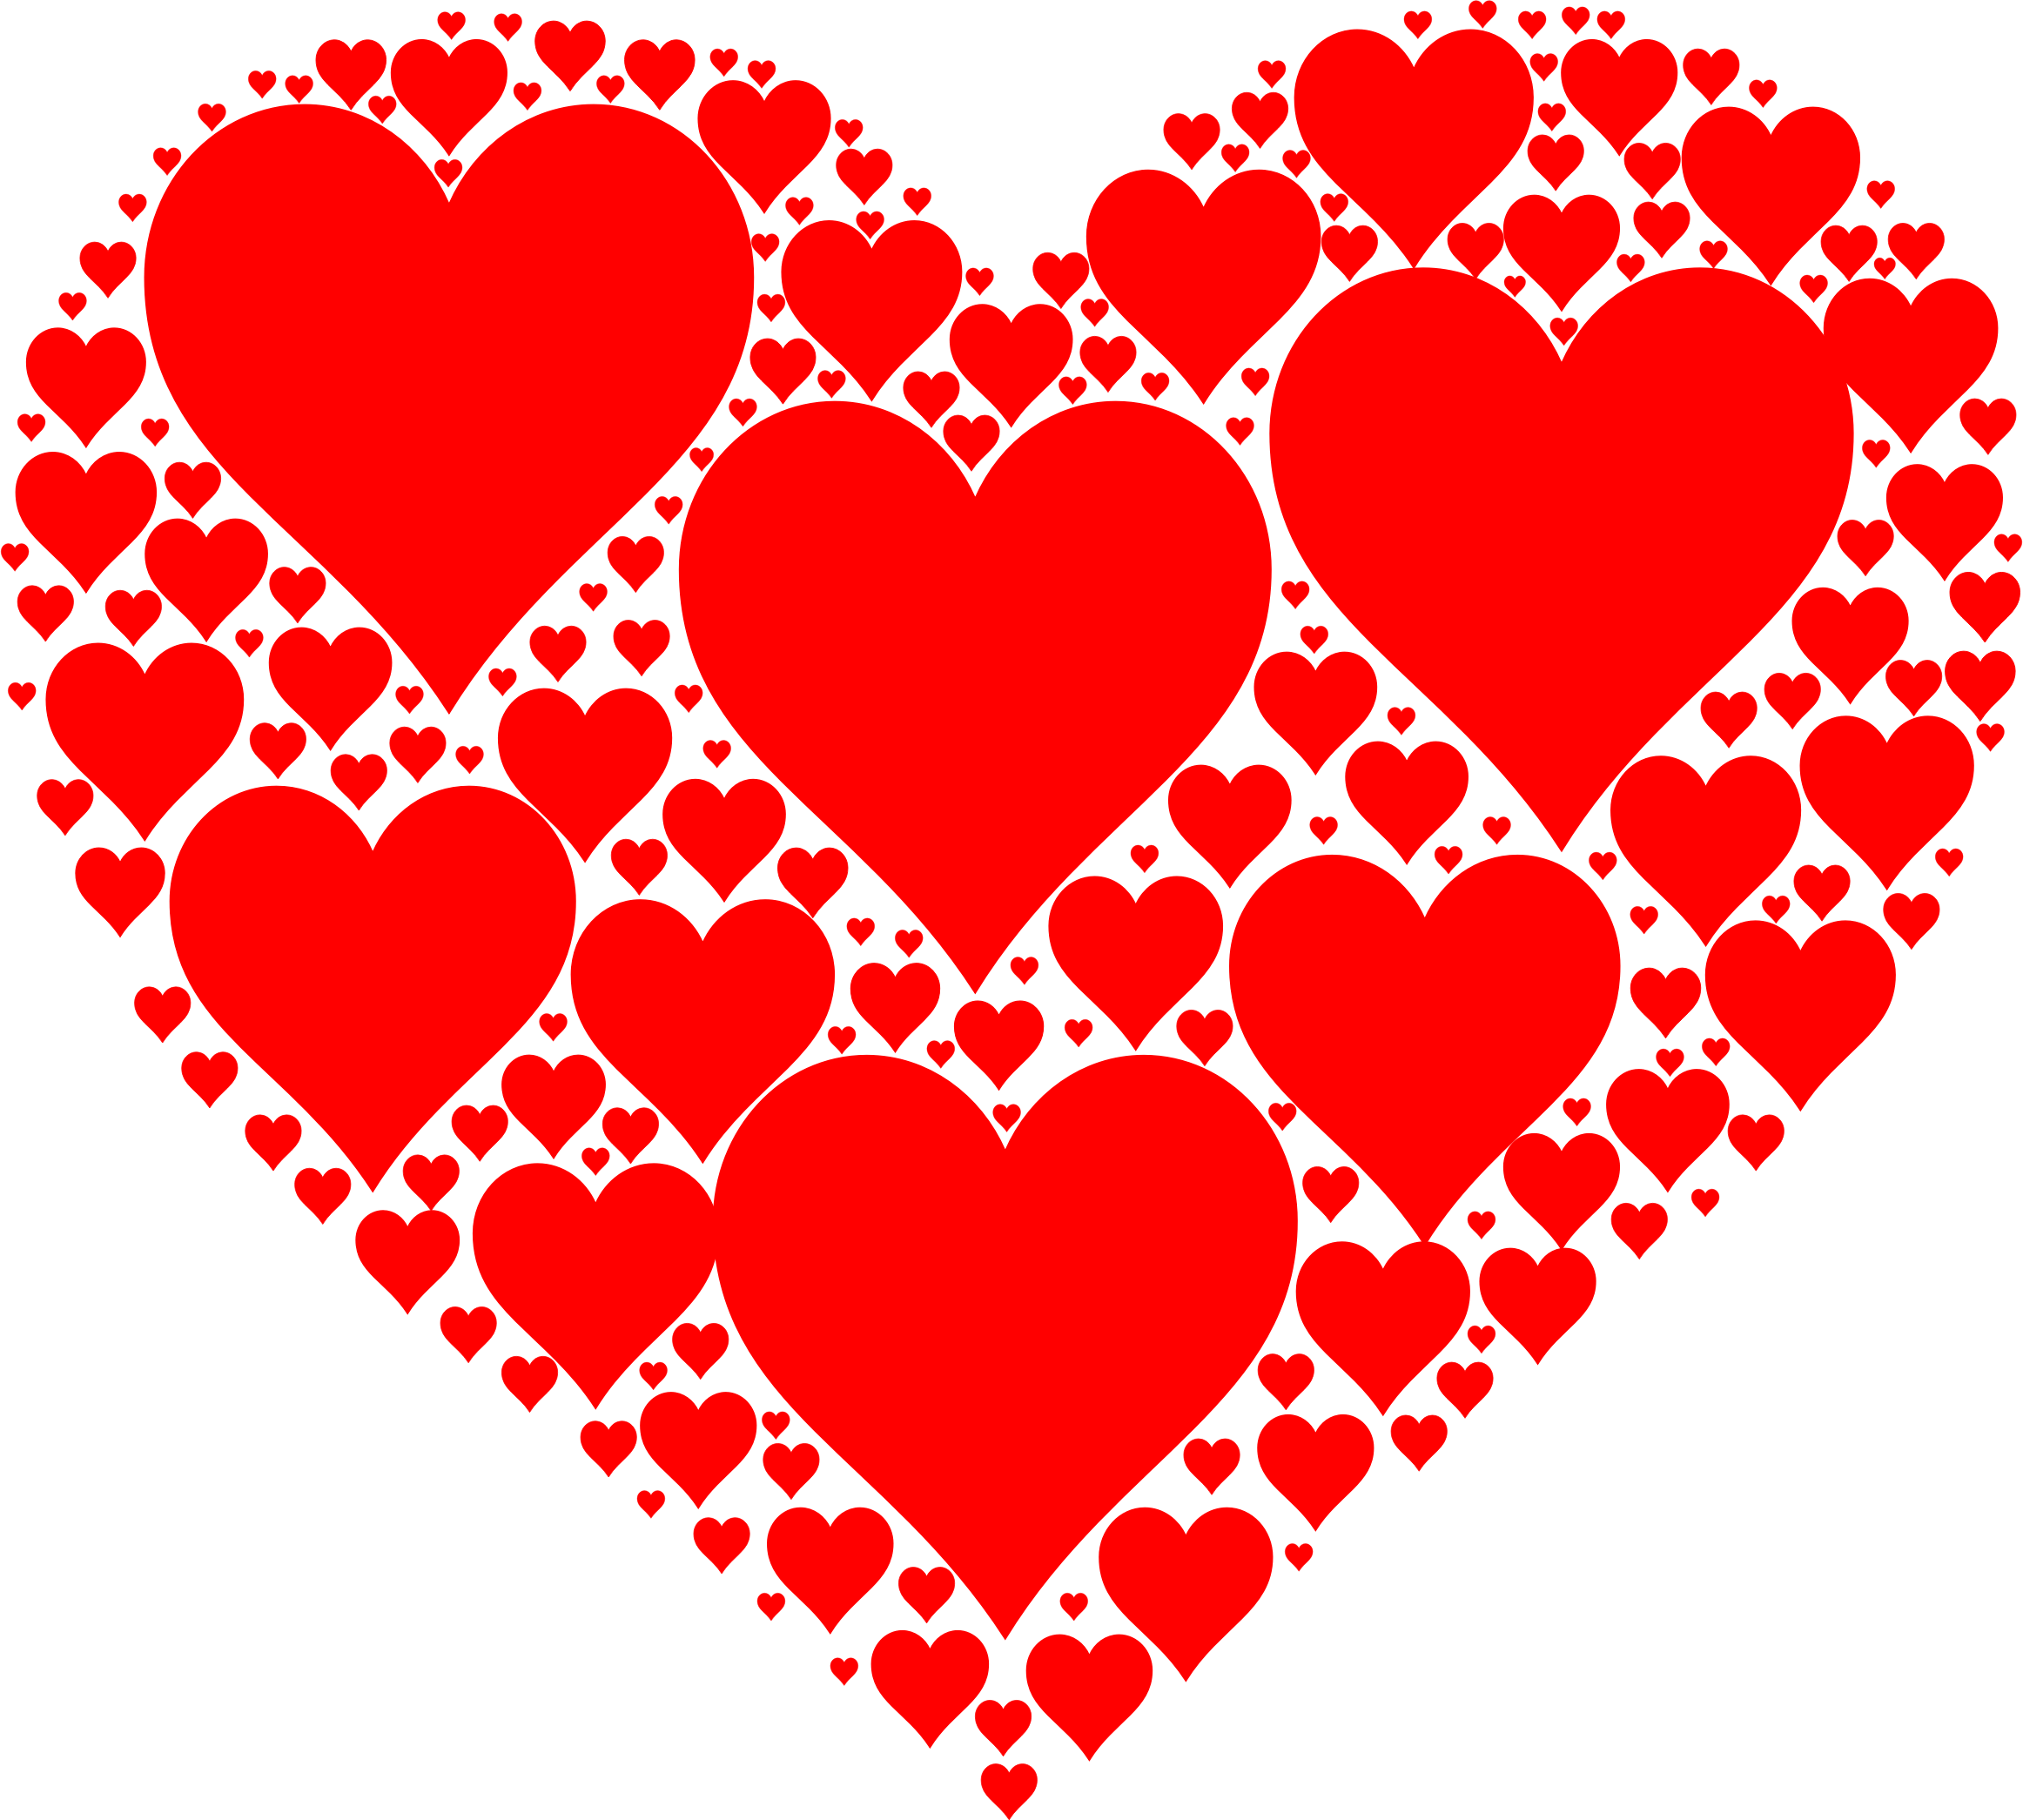 Heart jpg clipart clip library Pic Of Heart Group with 36 items clip library